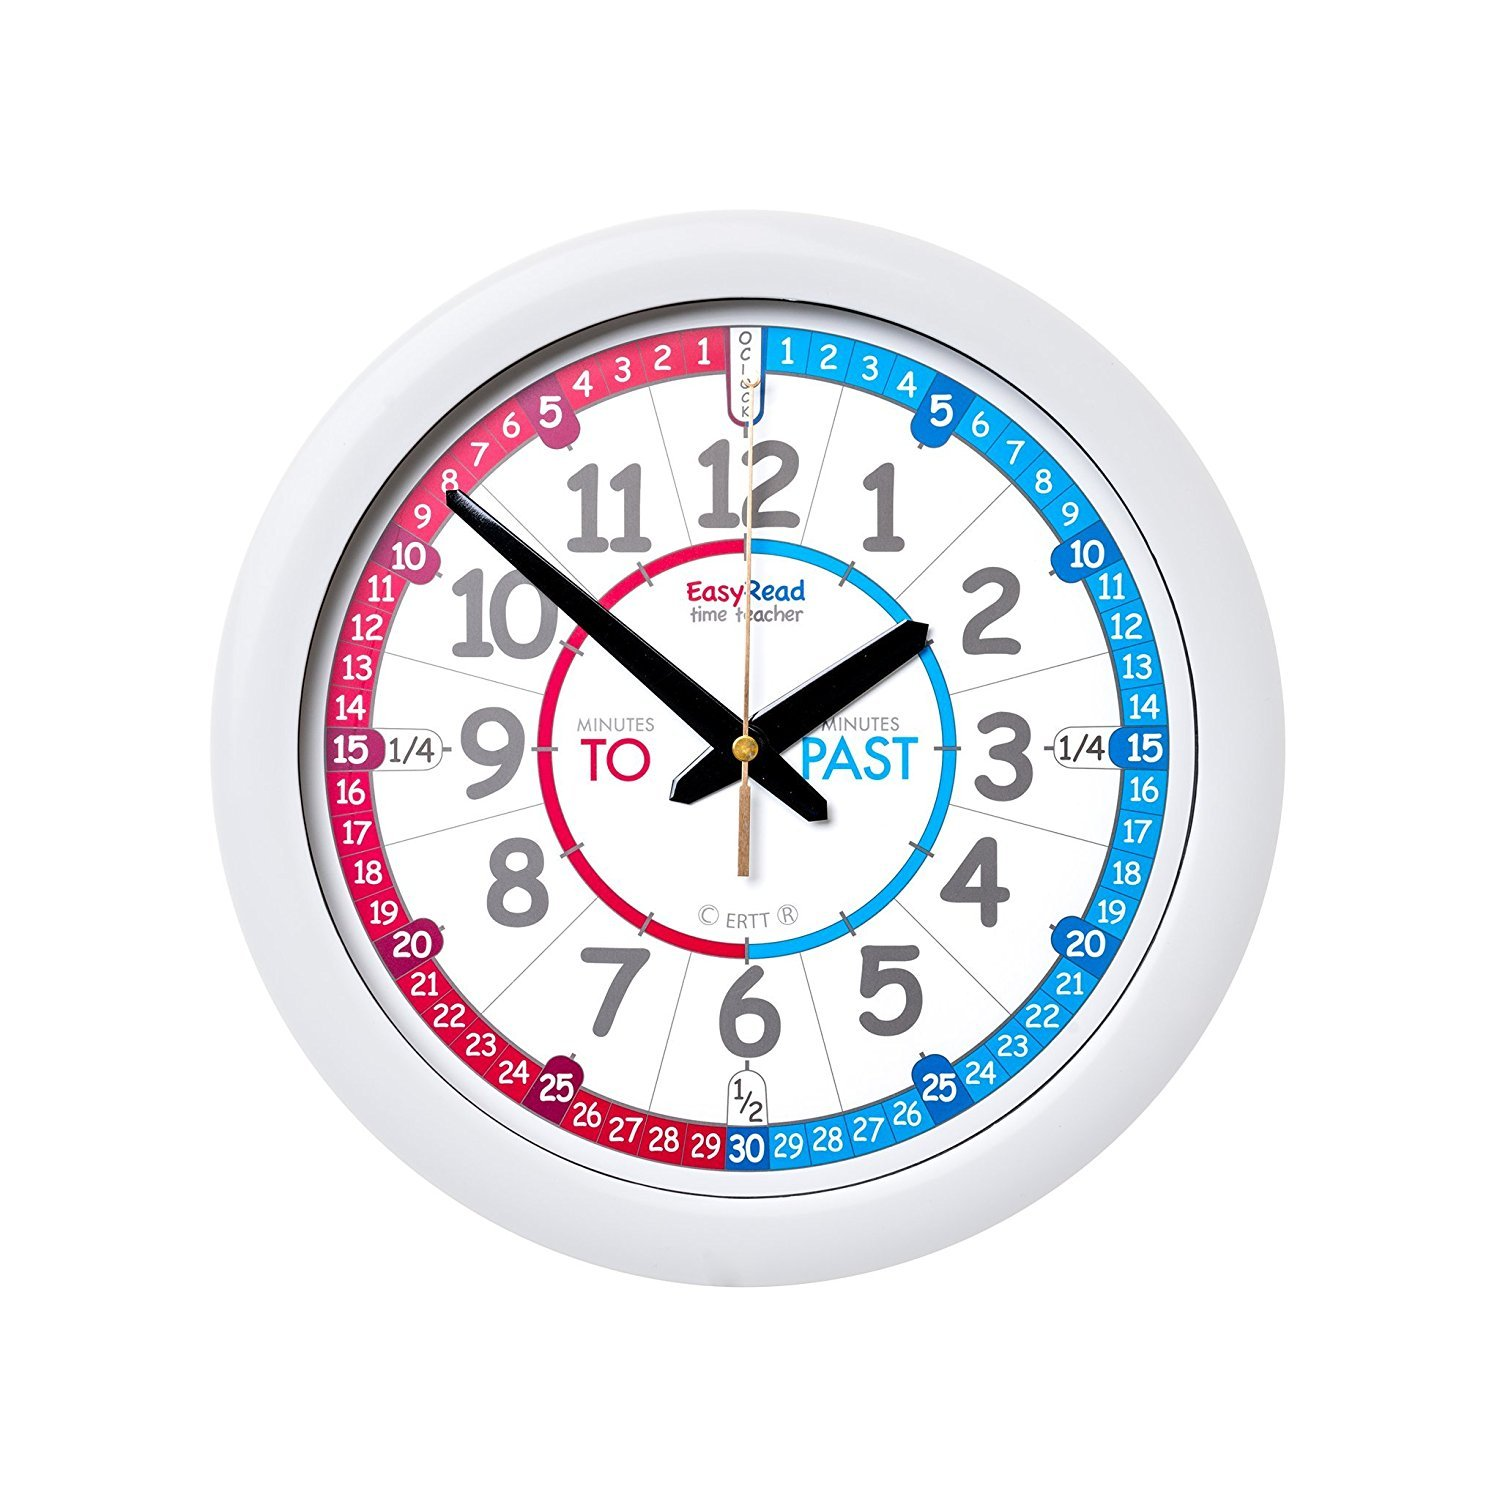 EasyRead Time Teacher Children's Red Blue Wall Clock, Past & To format with silent movement. Learn to tell the time in 3 simple steps, for children age 5+ B06XY4GVXB 15675